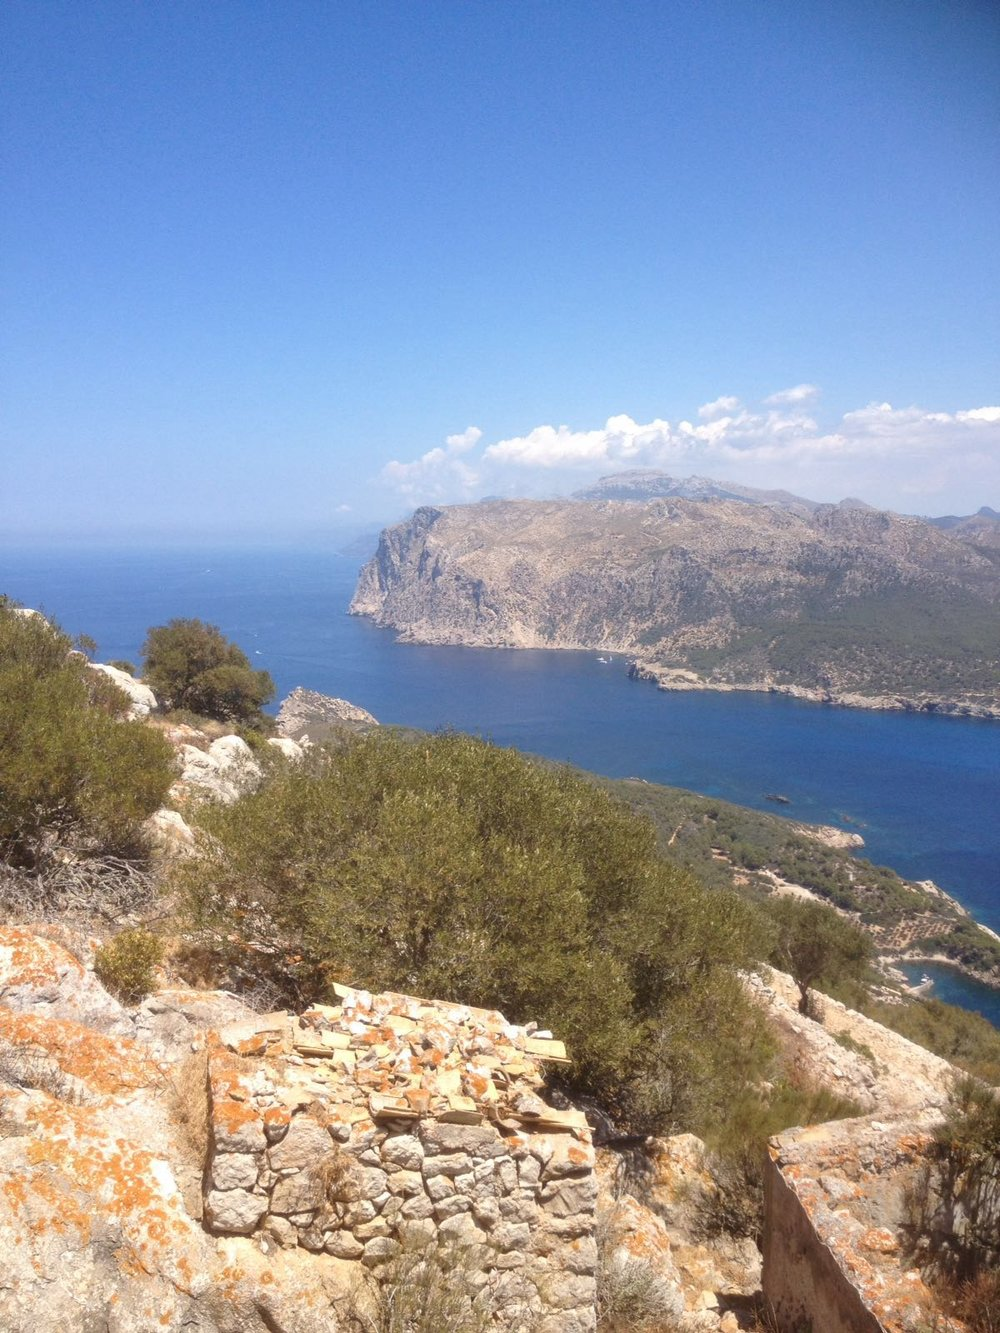 Picture taken on Dragonera looking back towards Mallorca